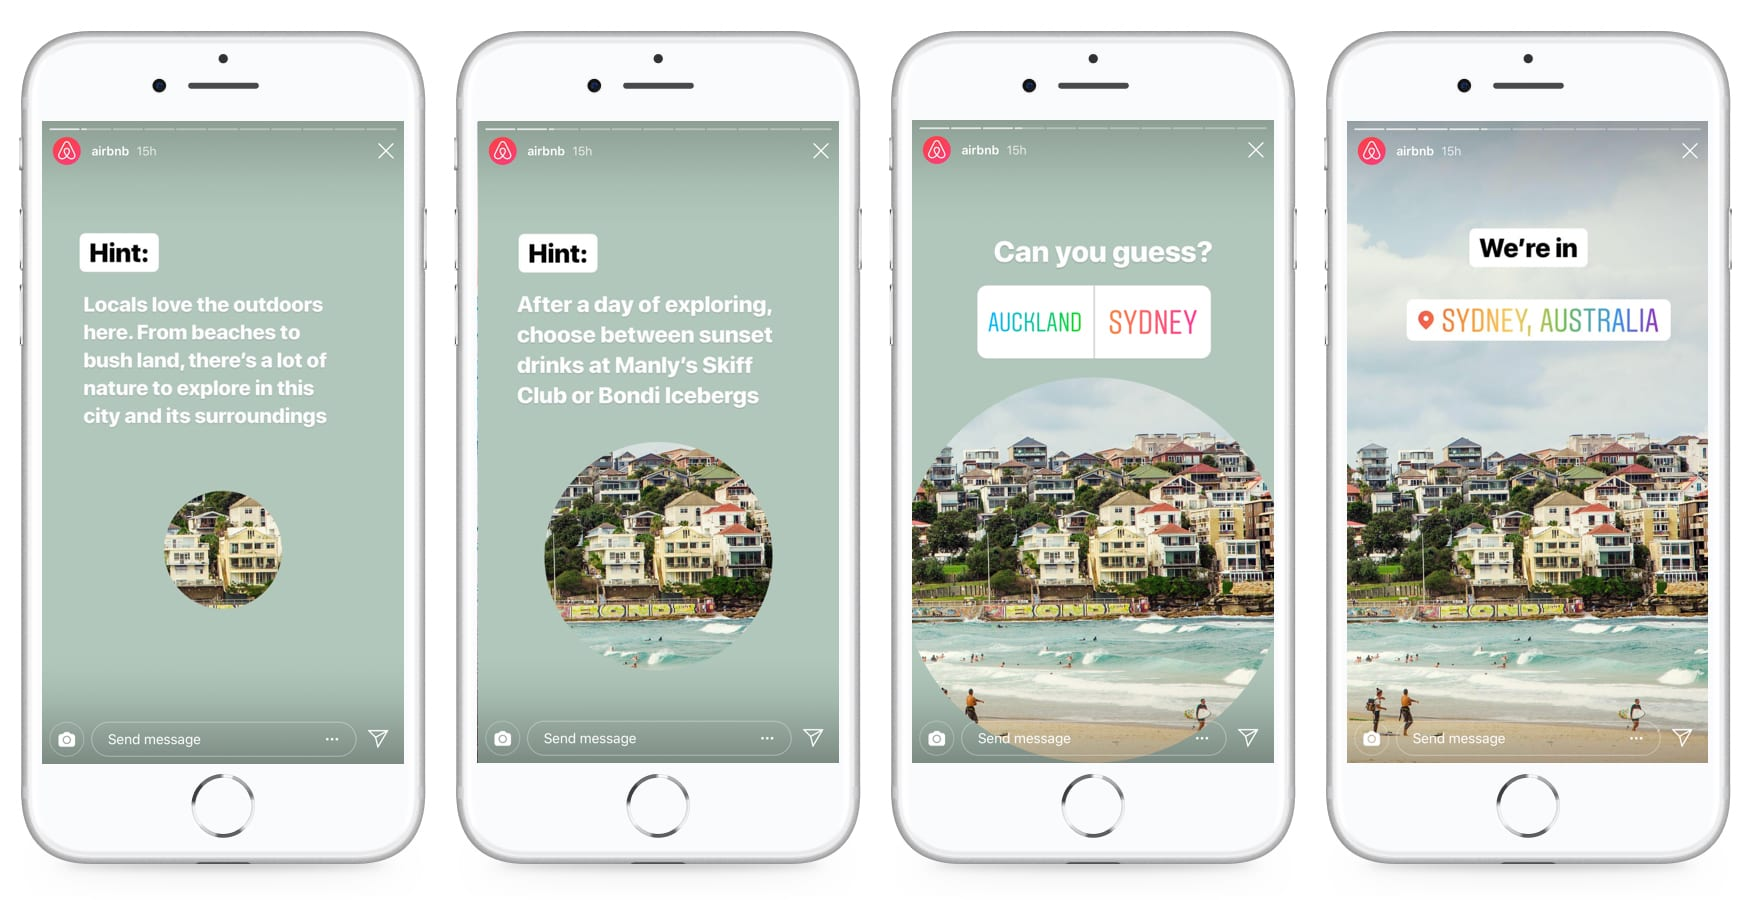 AirBnb Instagram Stories Example